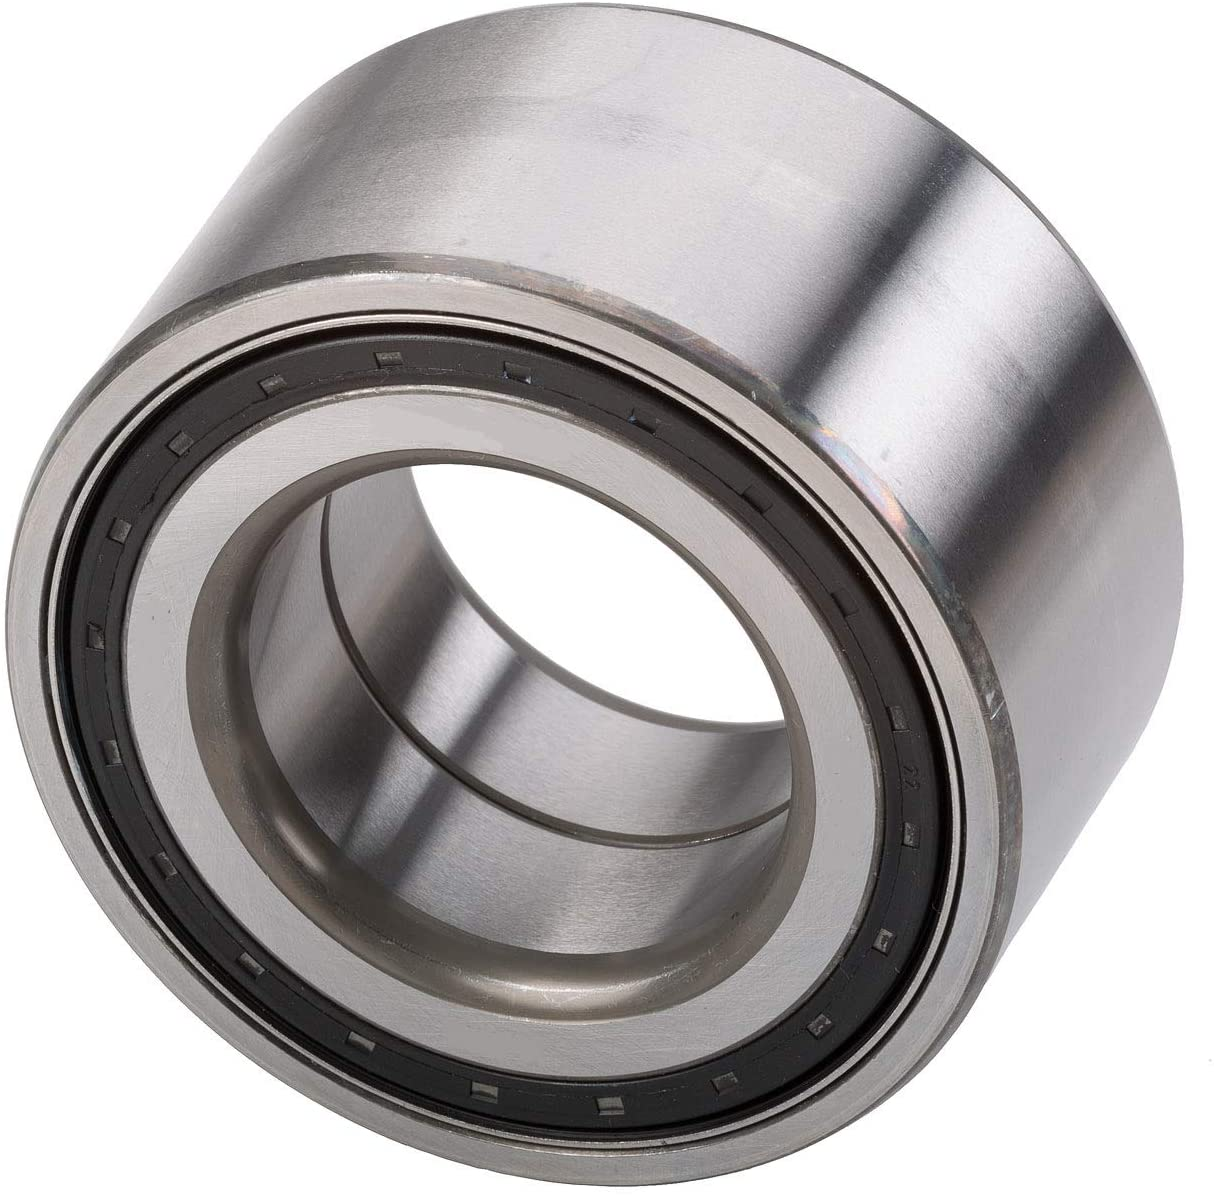 Front Wheel Bearing for 2018 Kia Soul EV - With Two Years Warranty (Package Includes One Bearing)